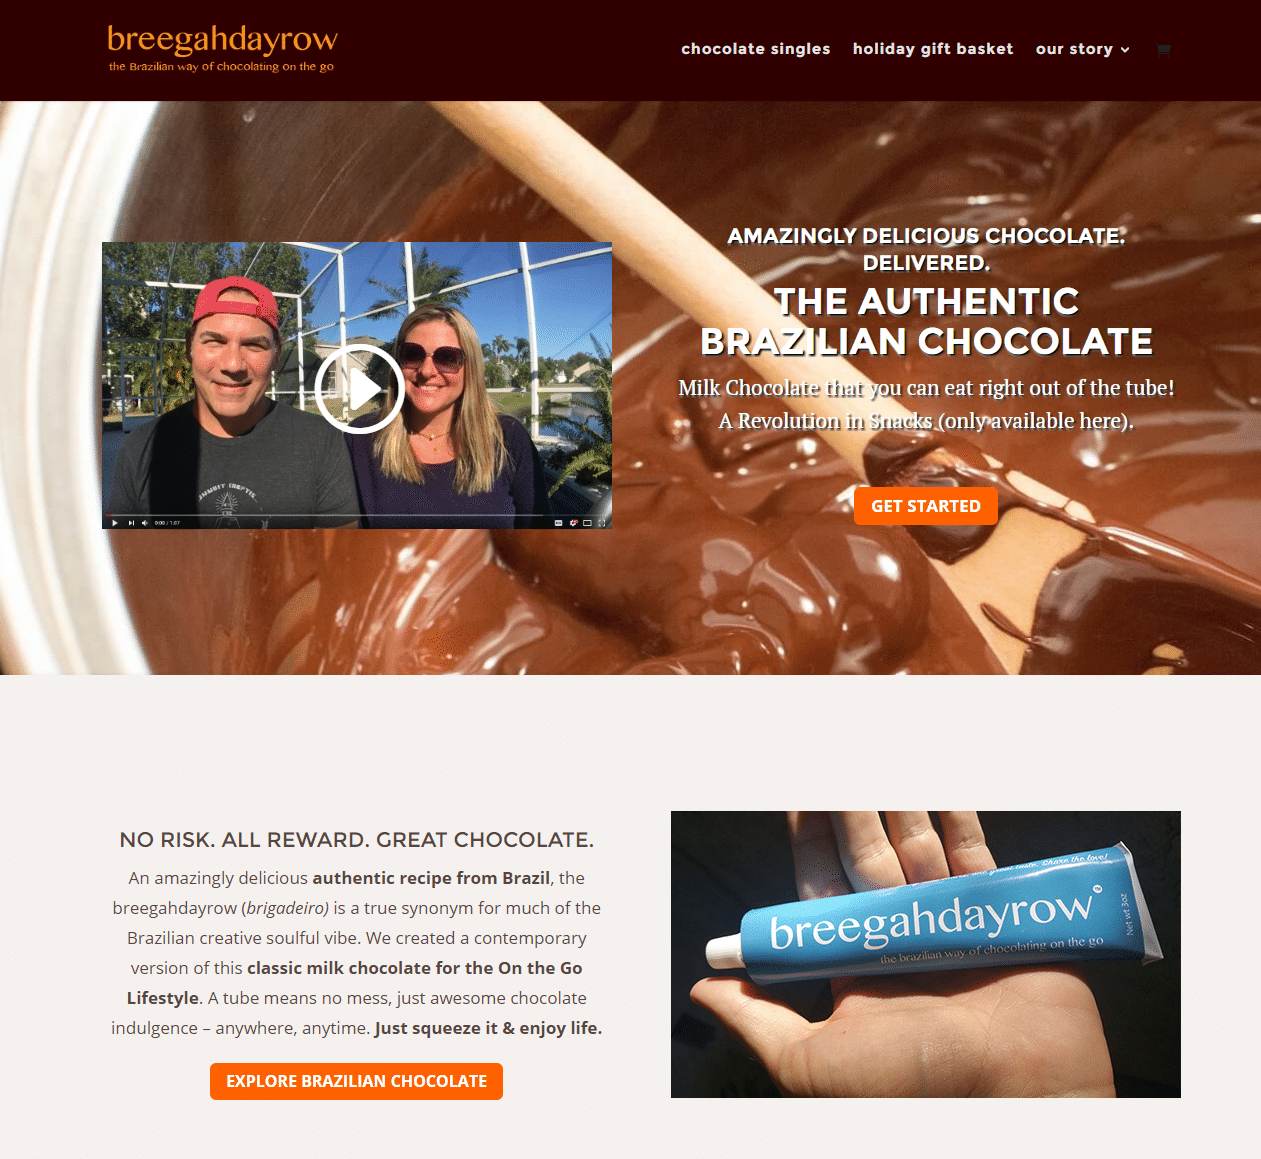 breegahdayrow™ chocolate a new way of enjoying brazilian chocolate